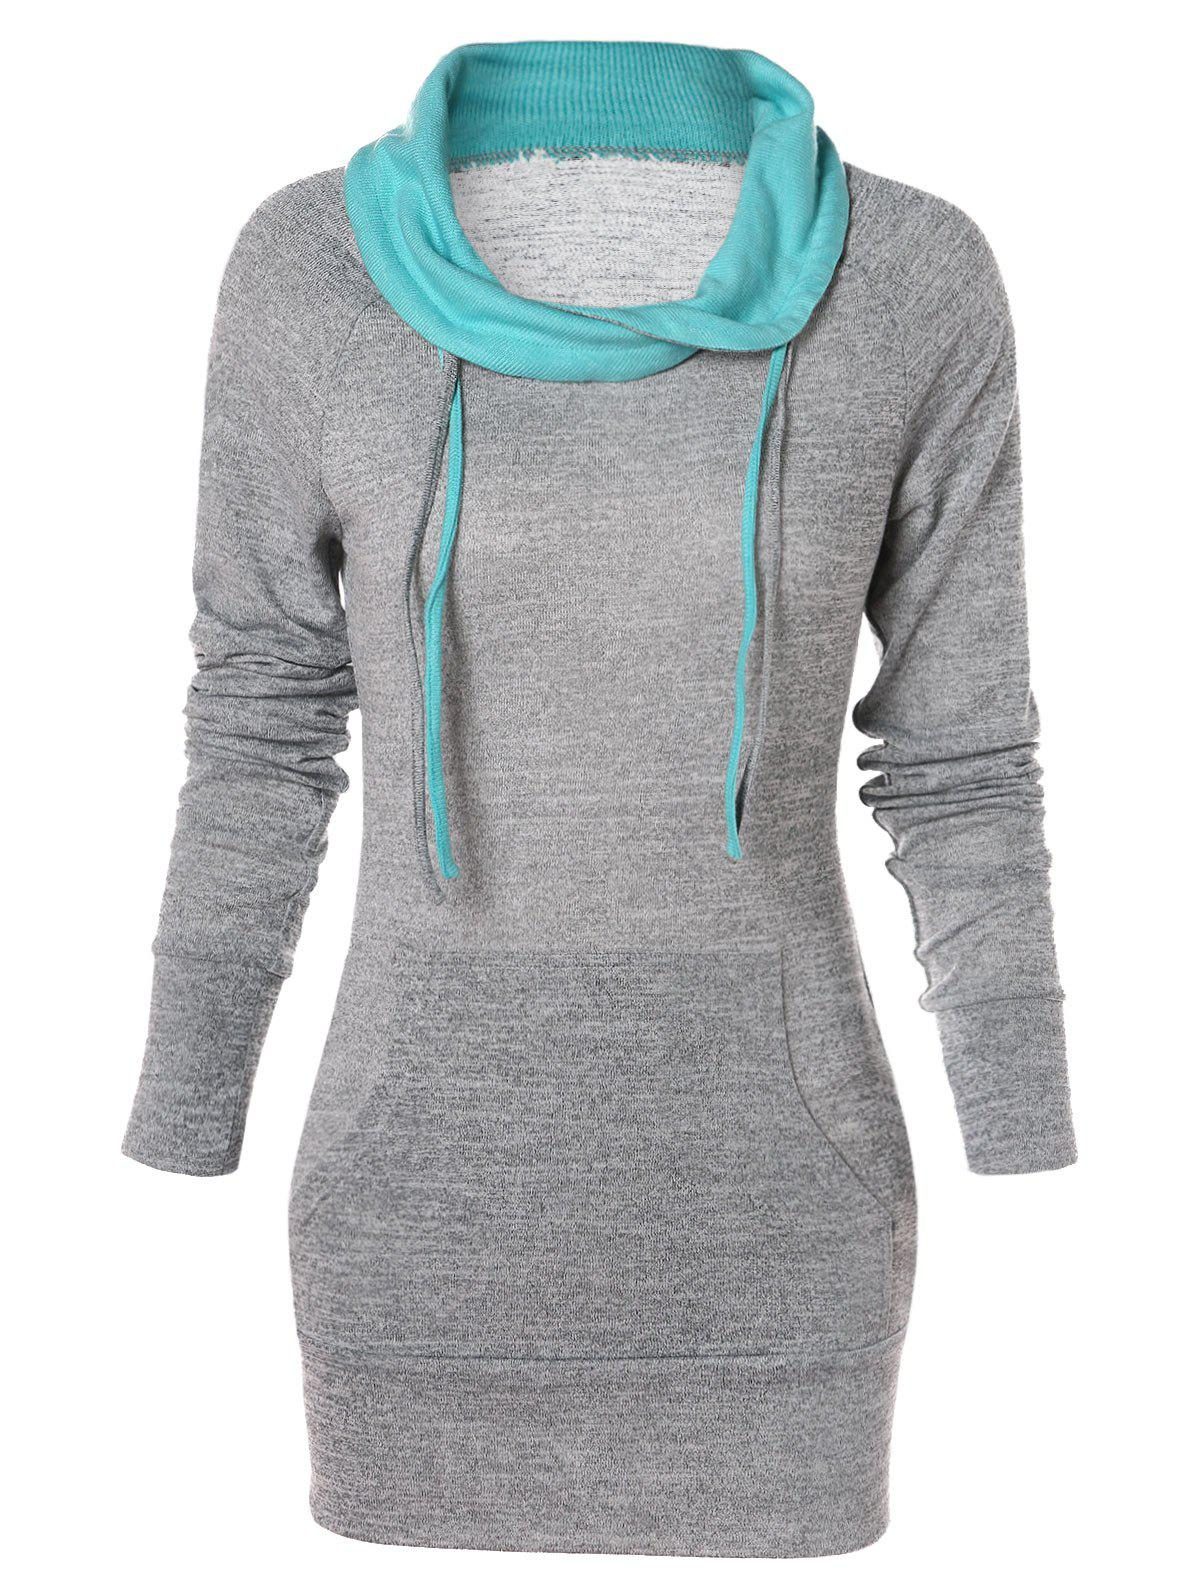 Chic Kangaroo Pocket Fitted Tunic Sweatshirt